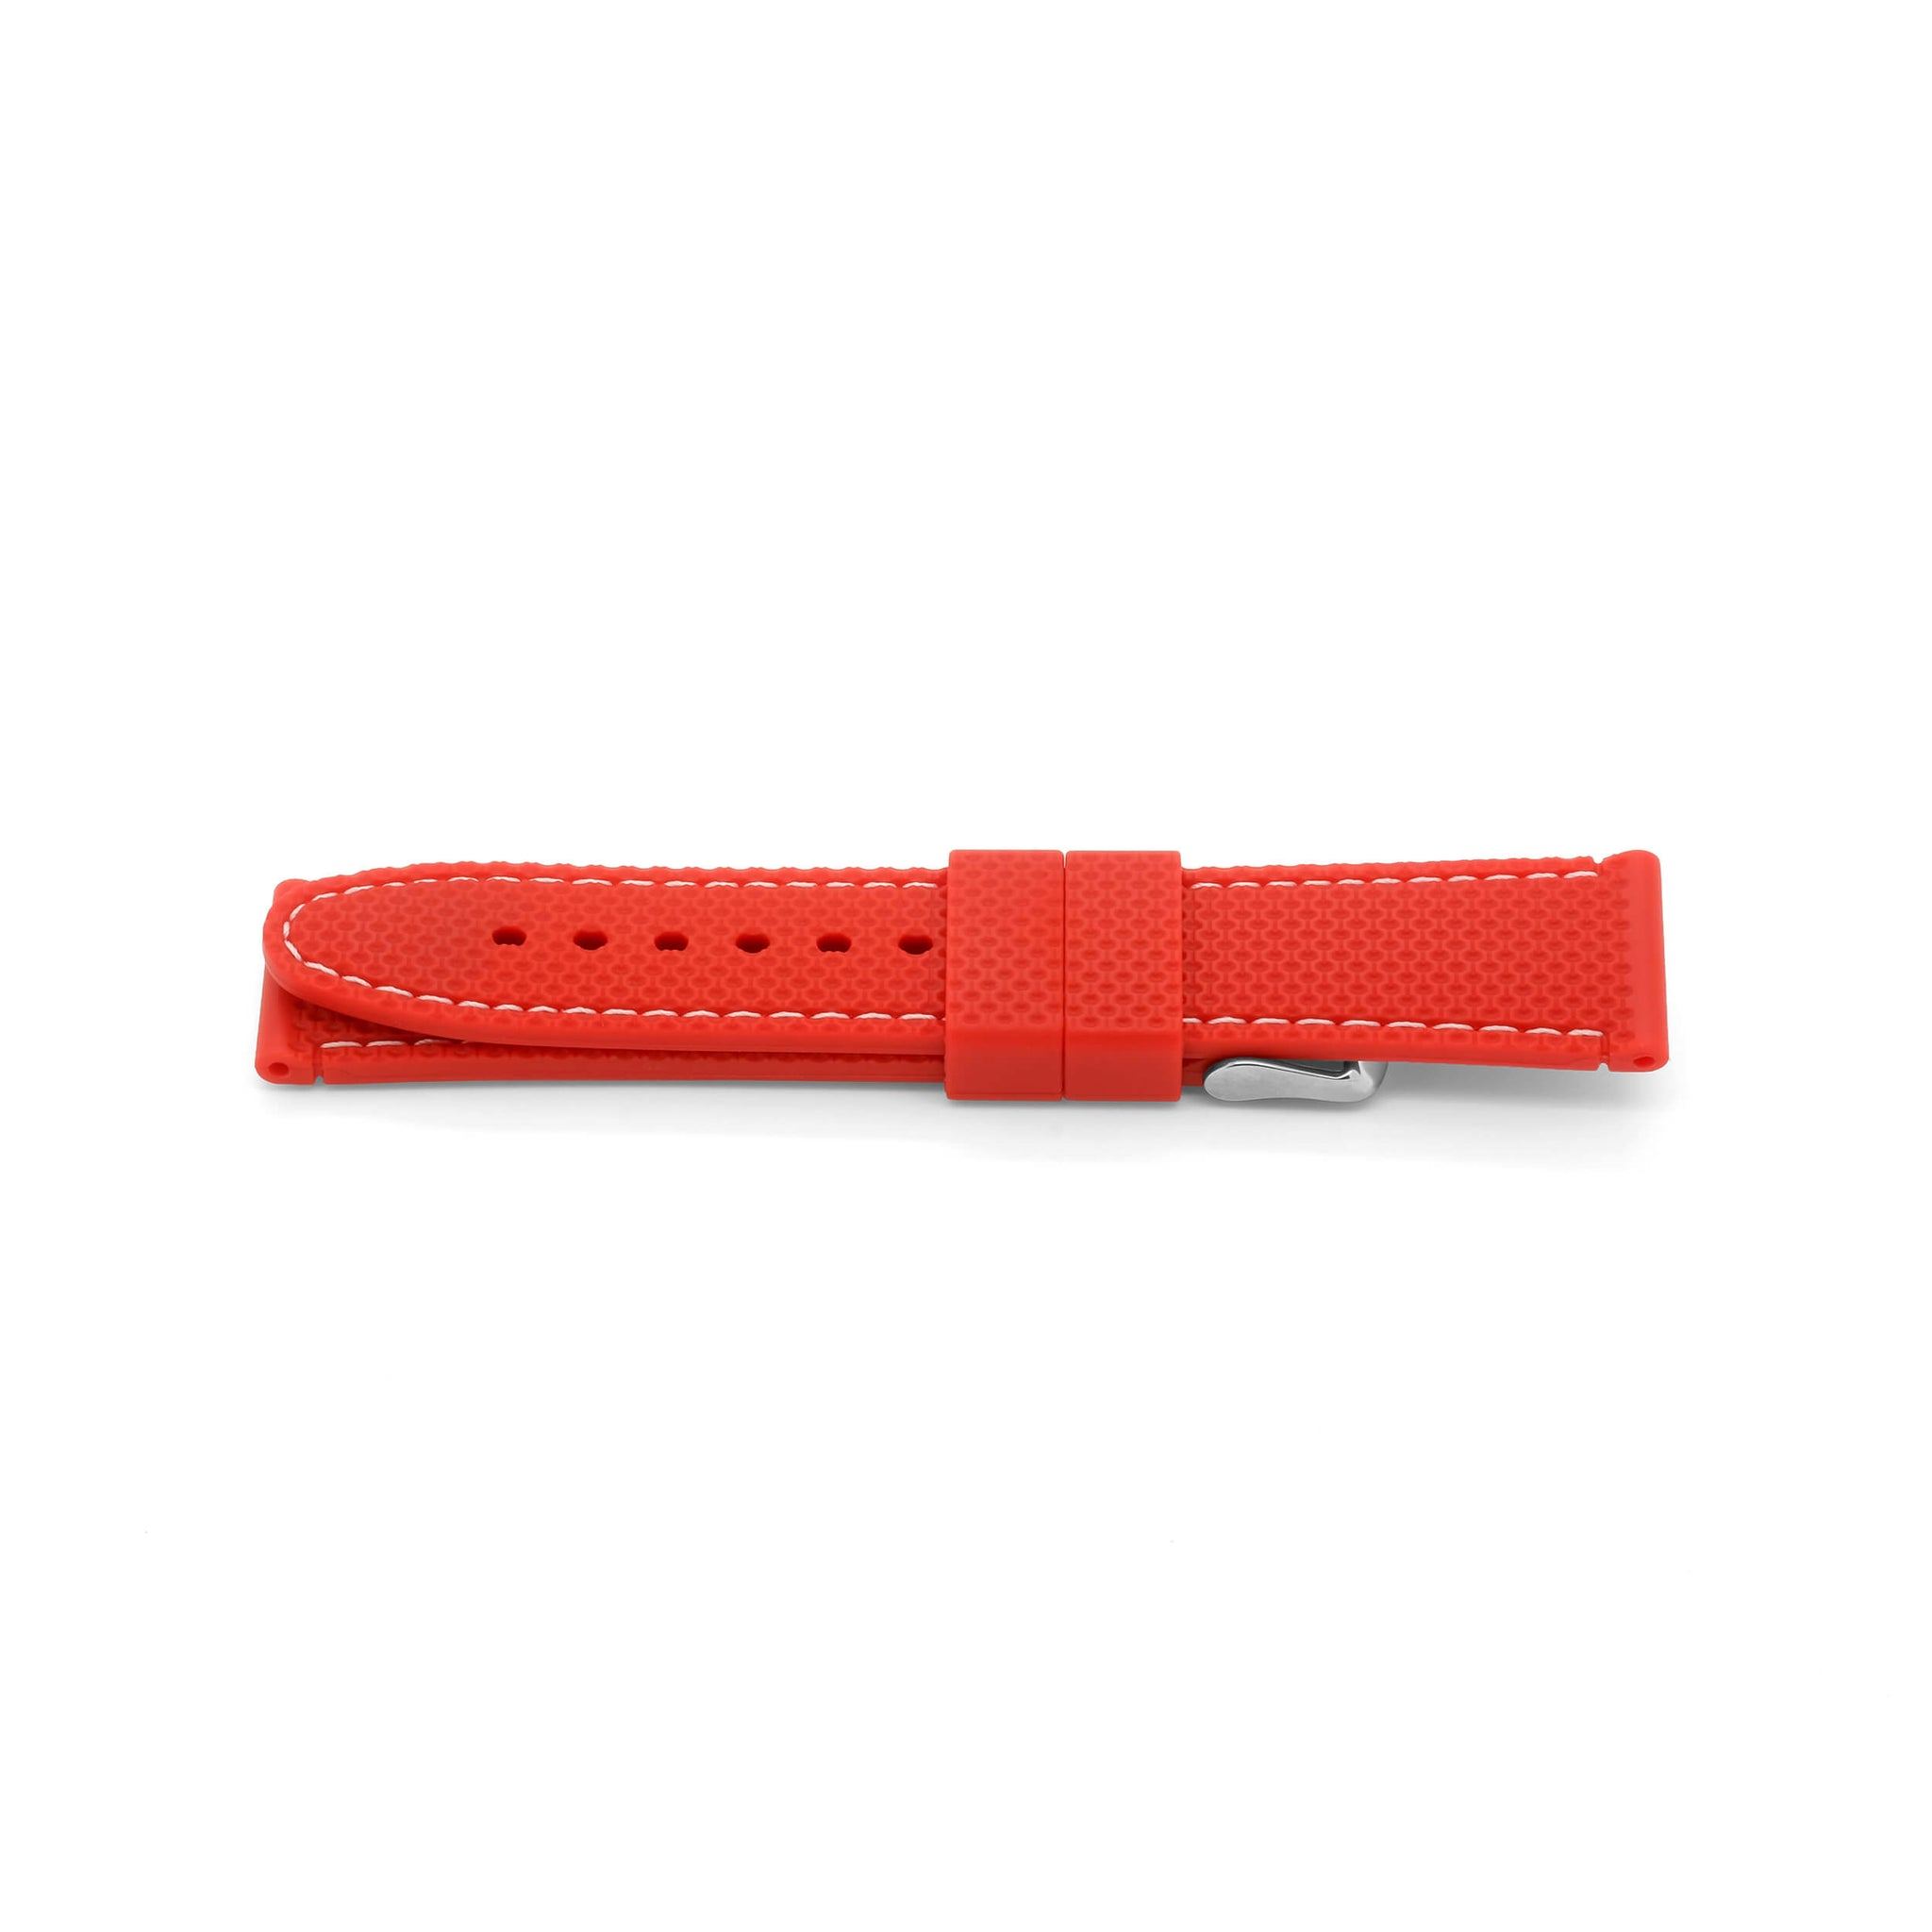 'Monaco' Rubber Watch Strap (Red/White)